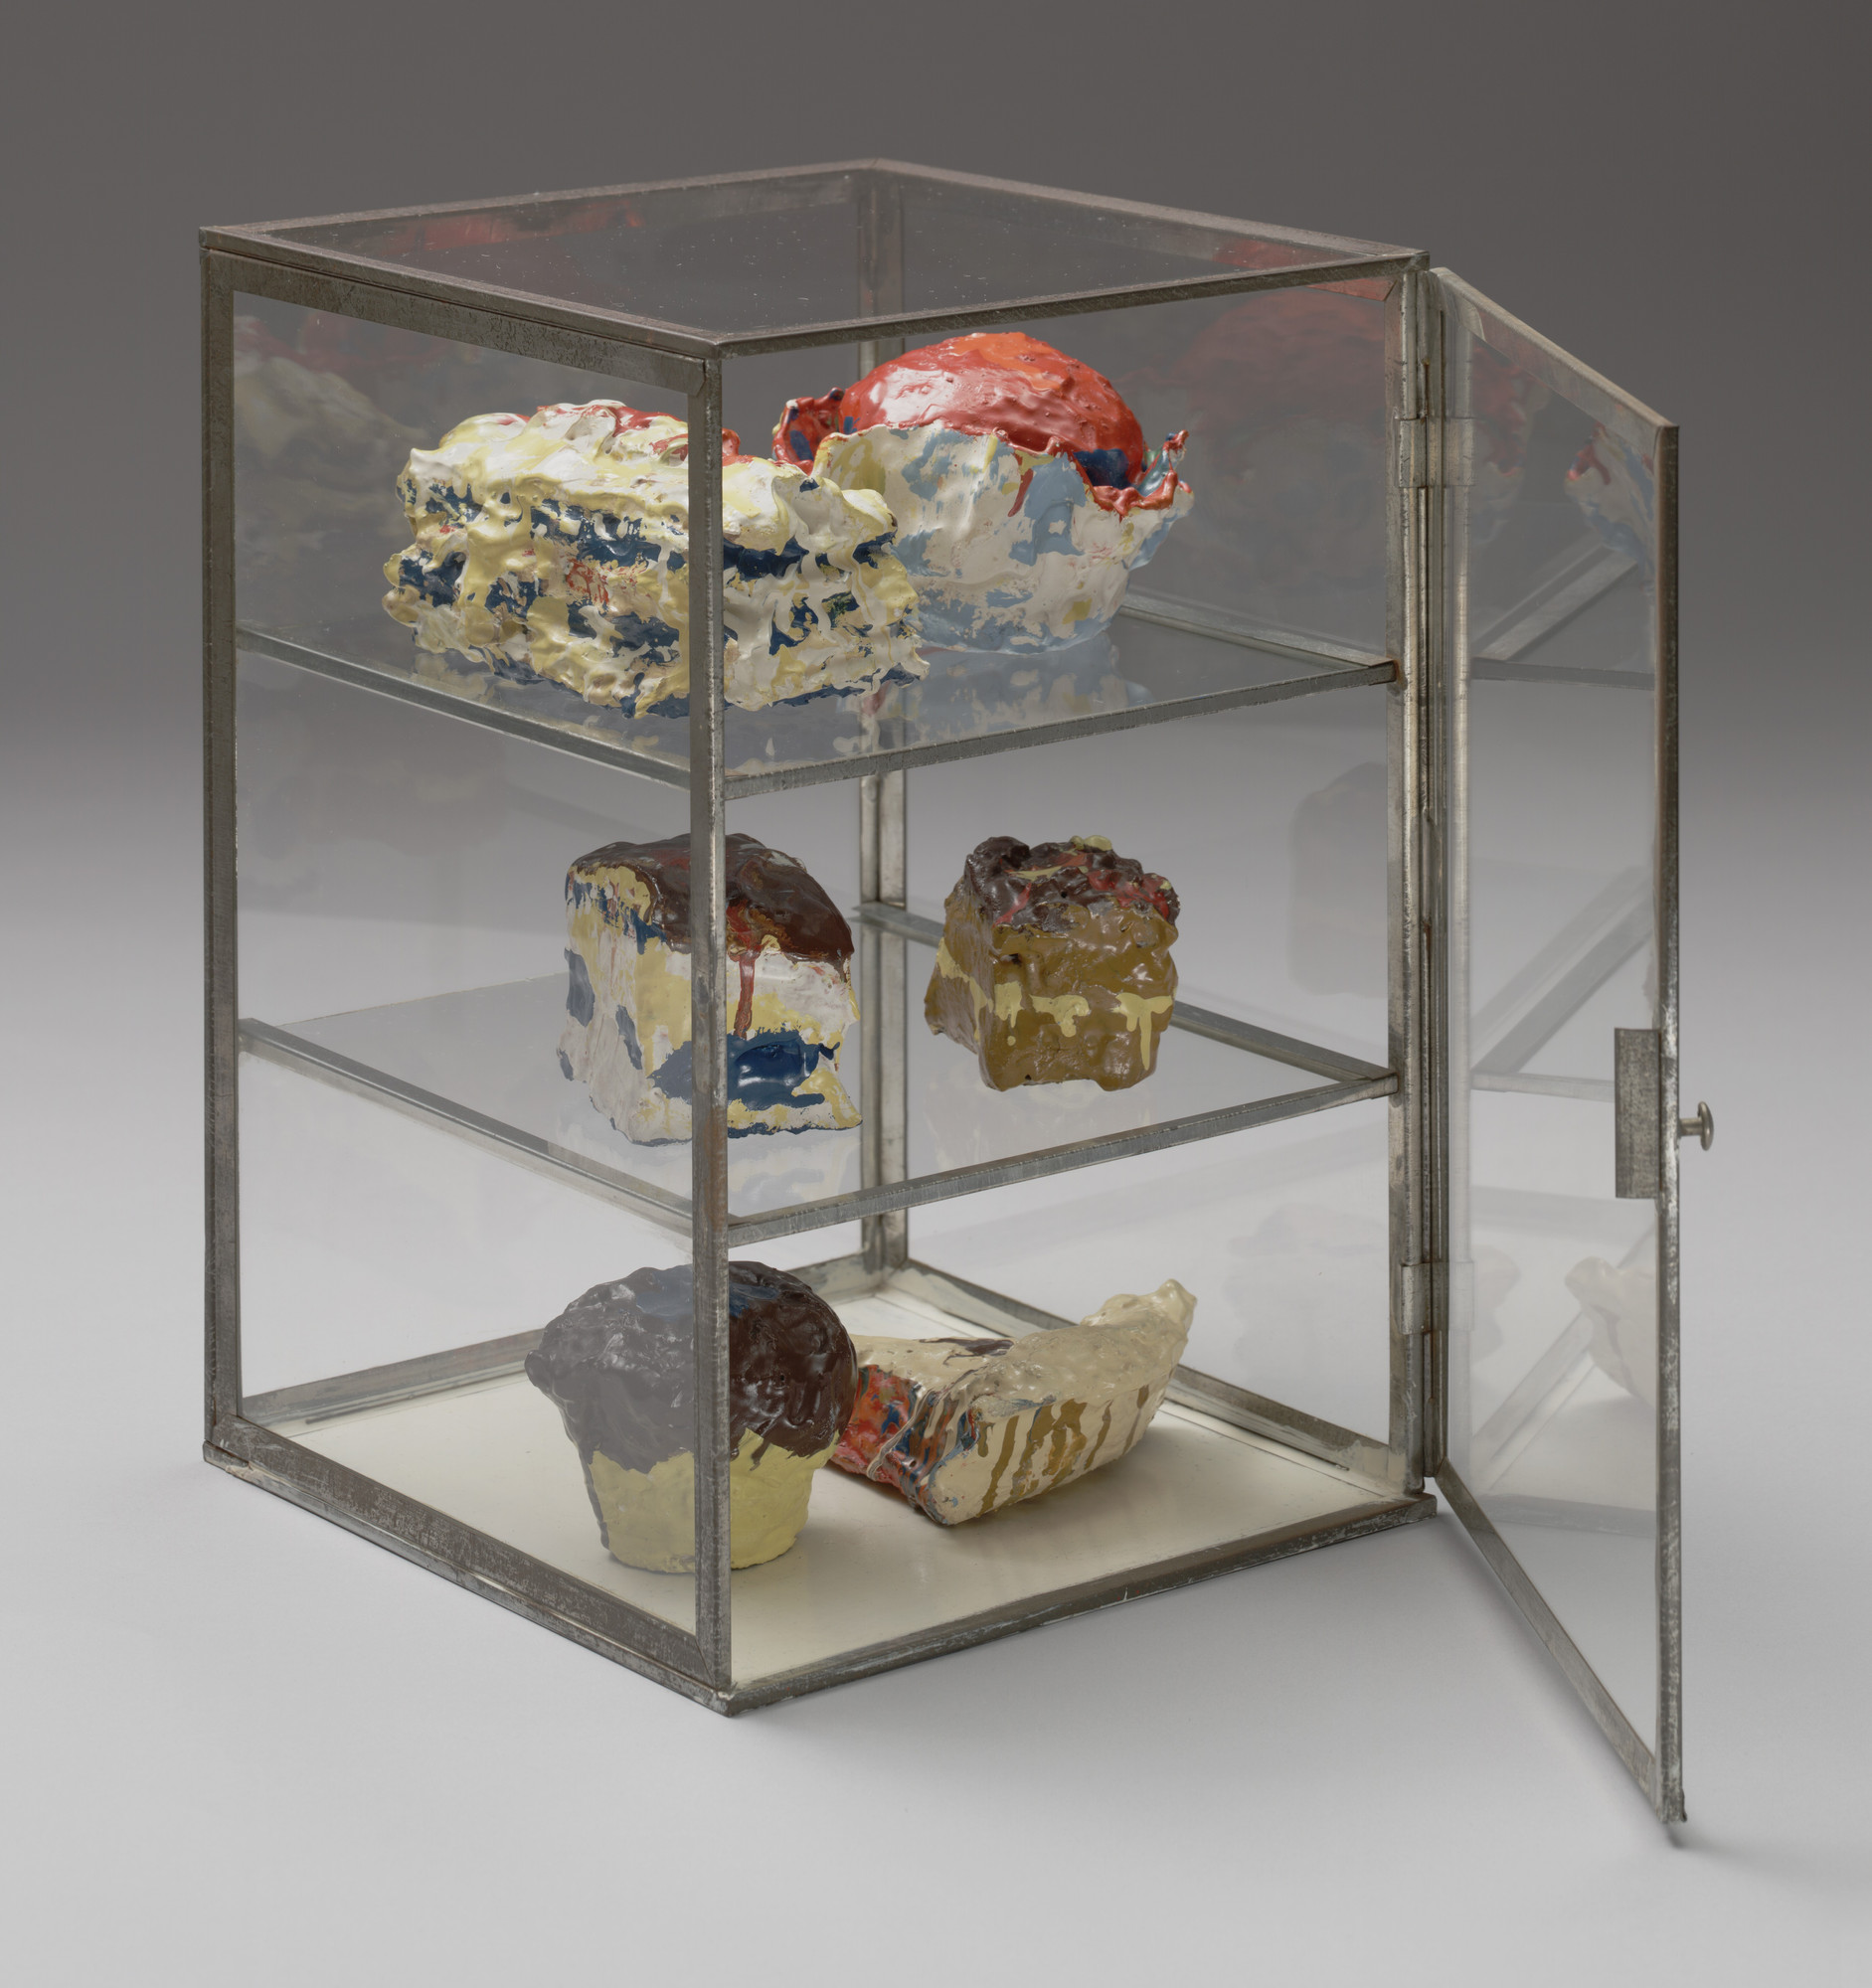 Claes Oldenburg. Pastry Case. 1961